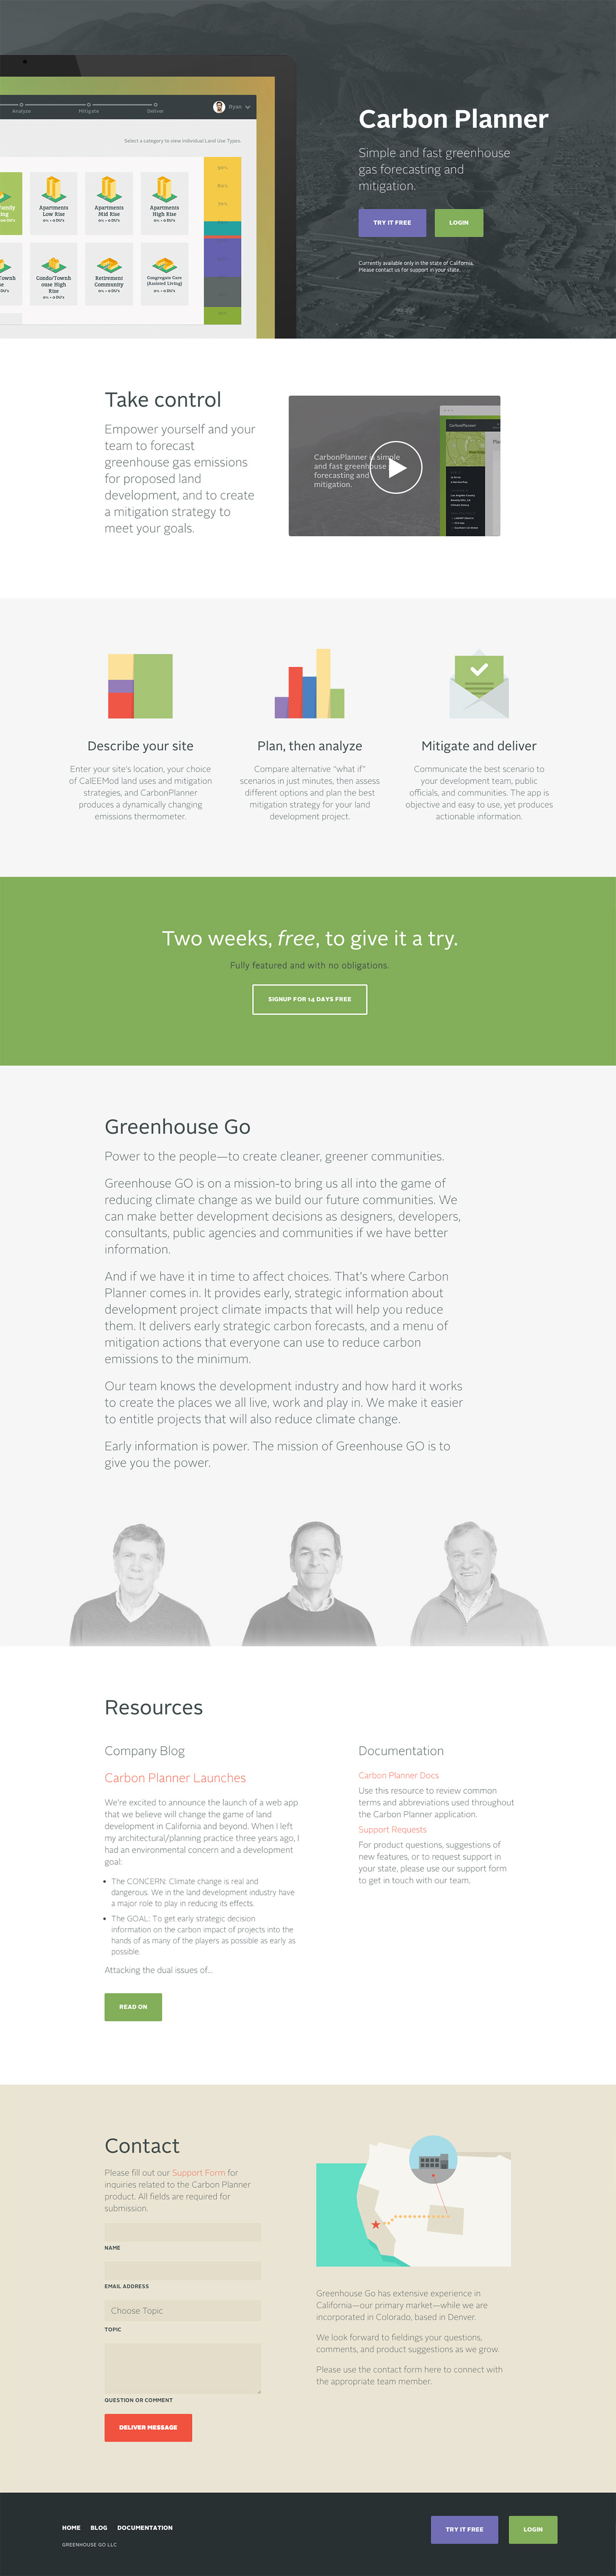 Greenhouse Go Website Screenshot